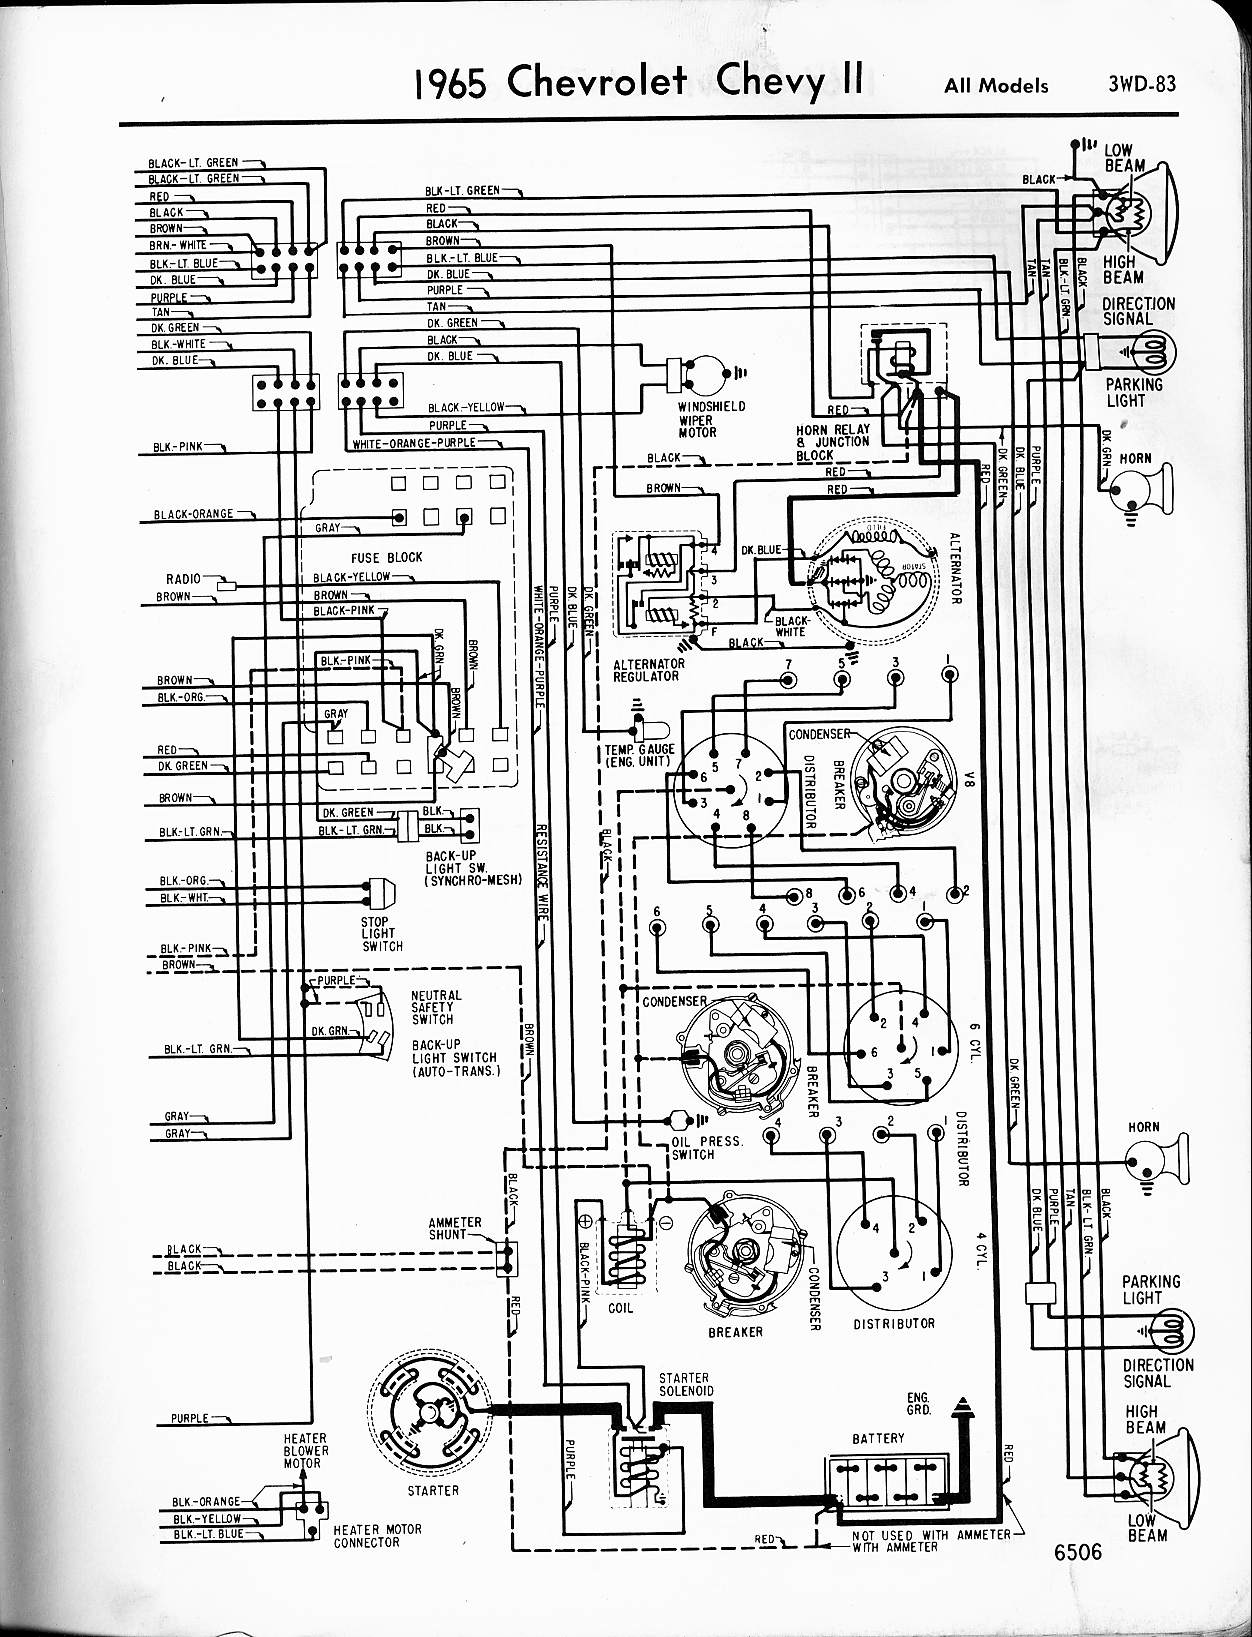 1961 chevy dash wiring diagram free download wiring diagram third 1968 chevy wiring diagram 1964 chevrolet wiring diagrams wiring diagrams 1961 vw wiring diagram 1961 chevy dash wiring diagram free download